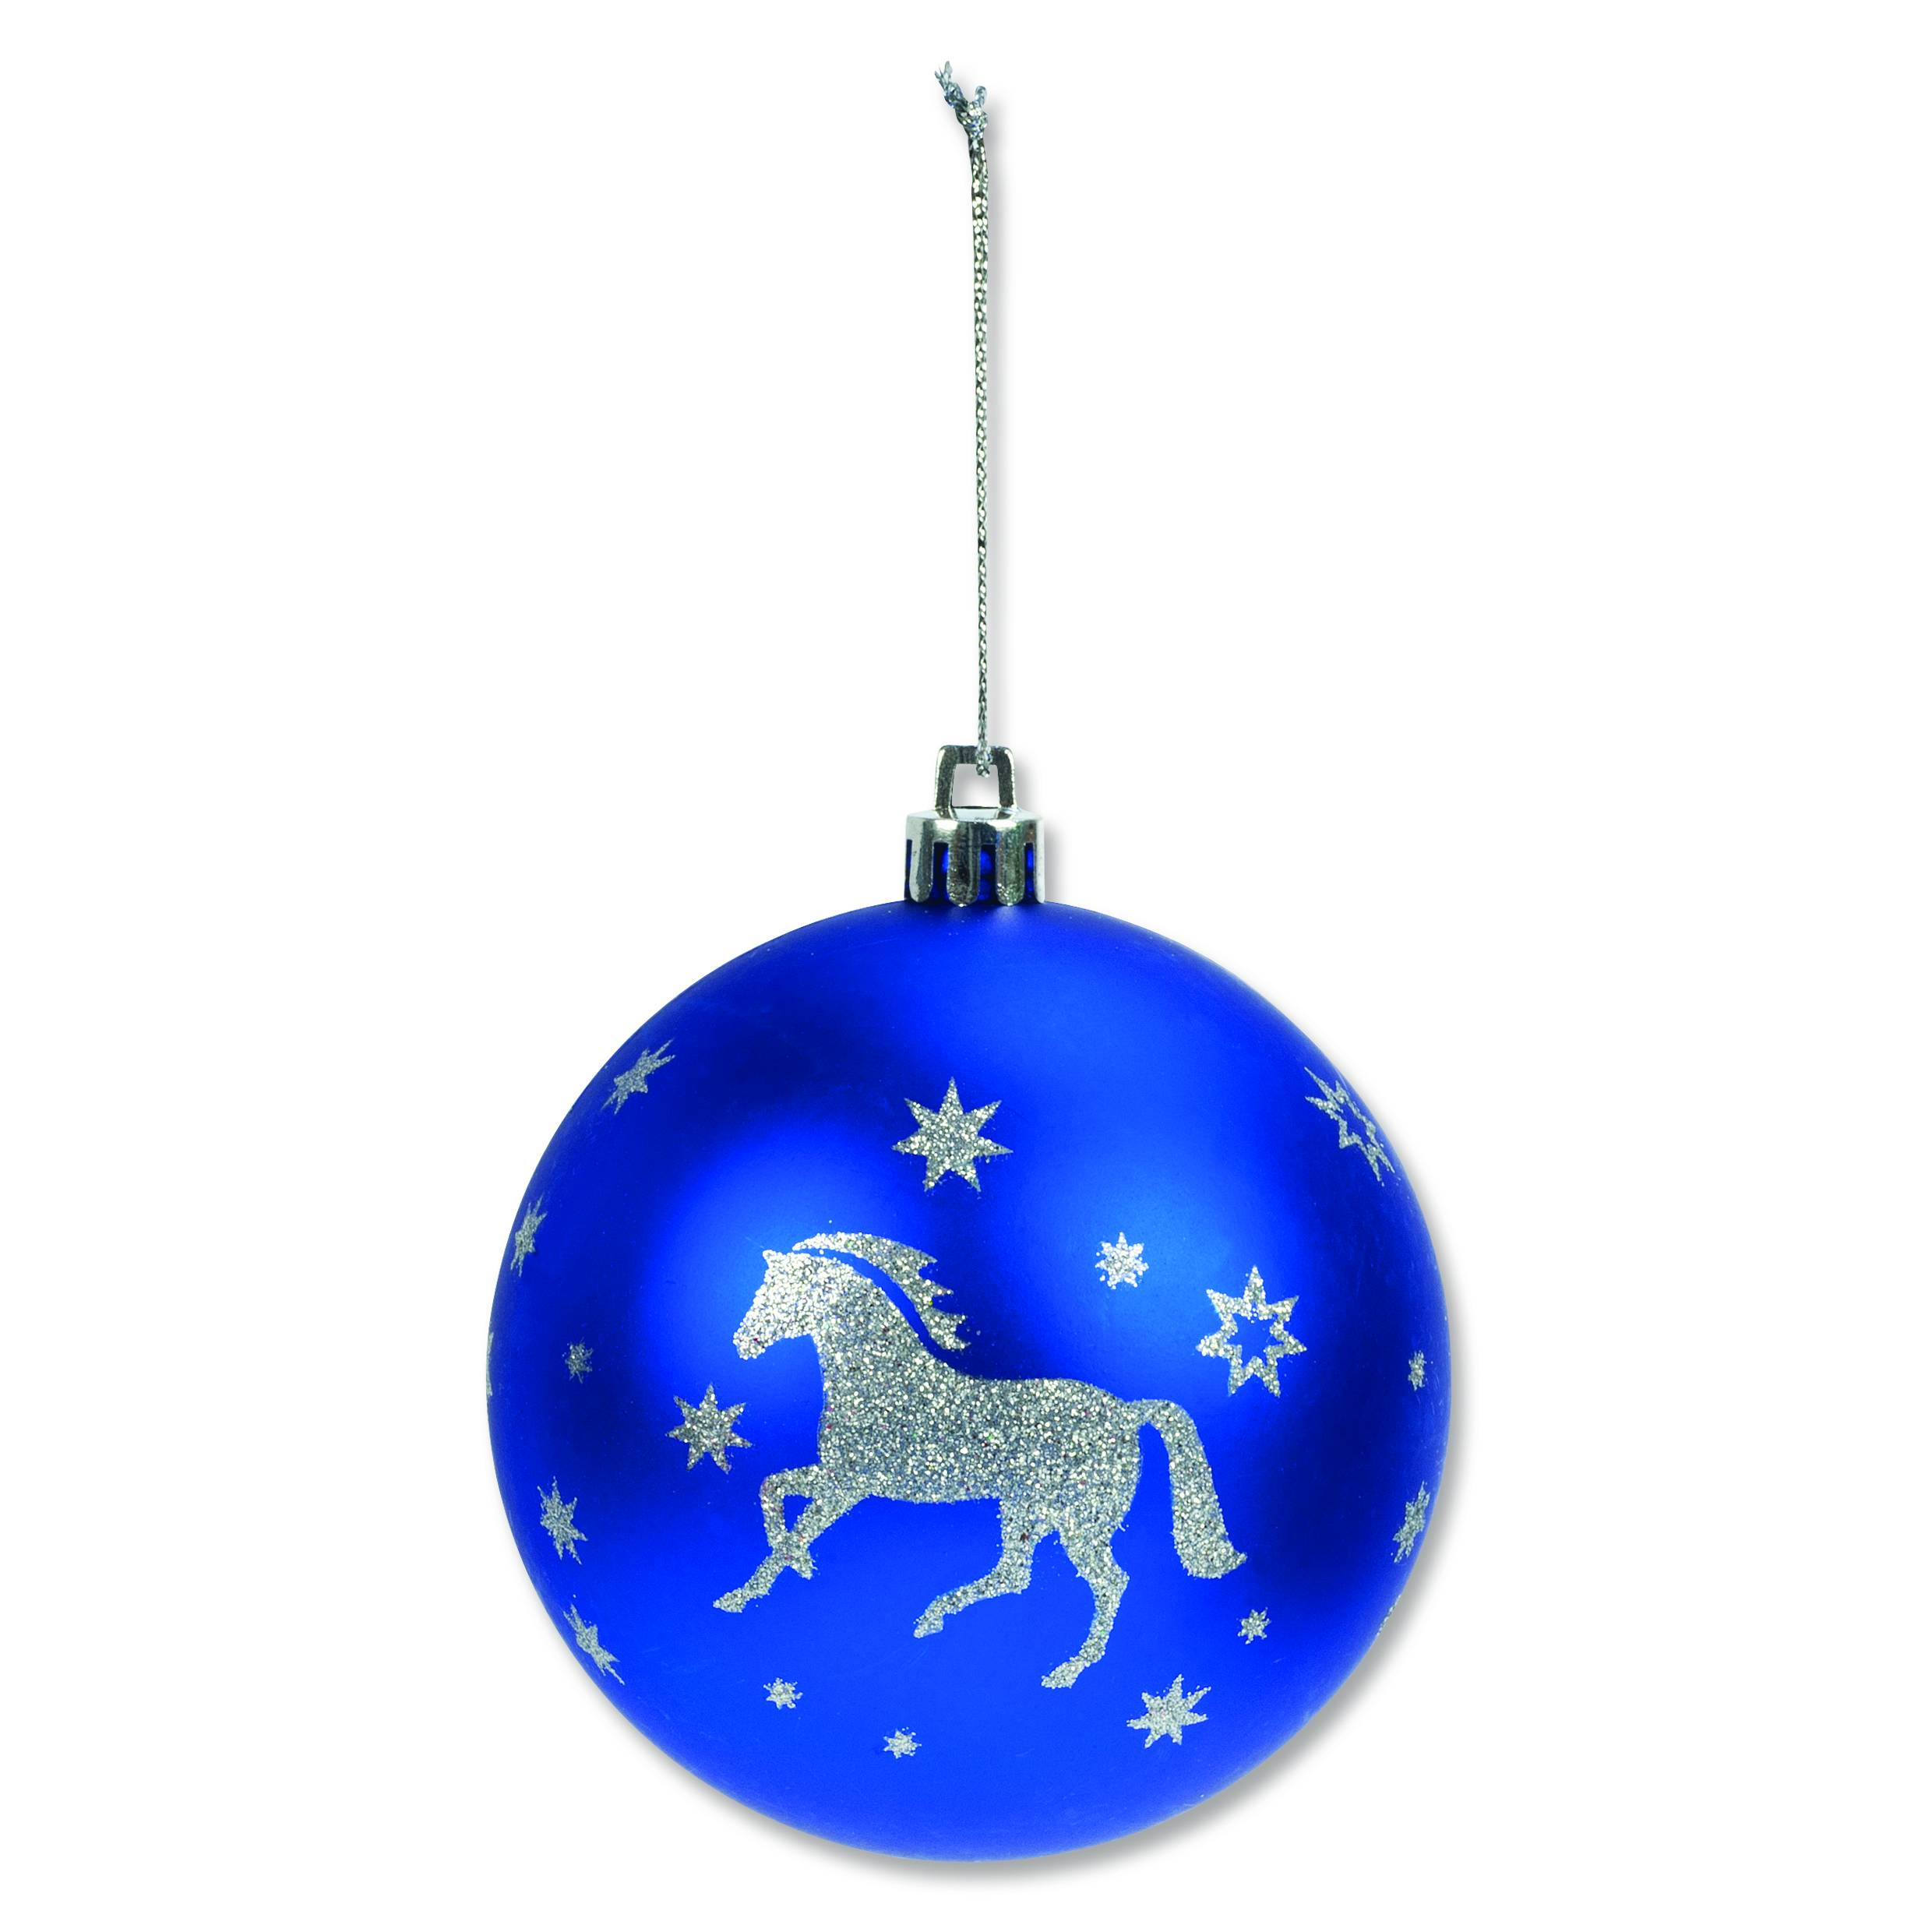 Horse Christmas Ornaments - 6 Pack